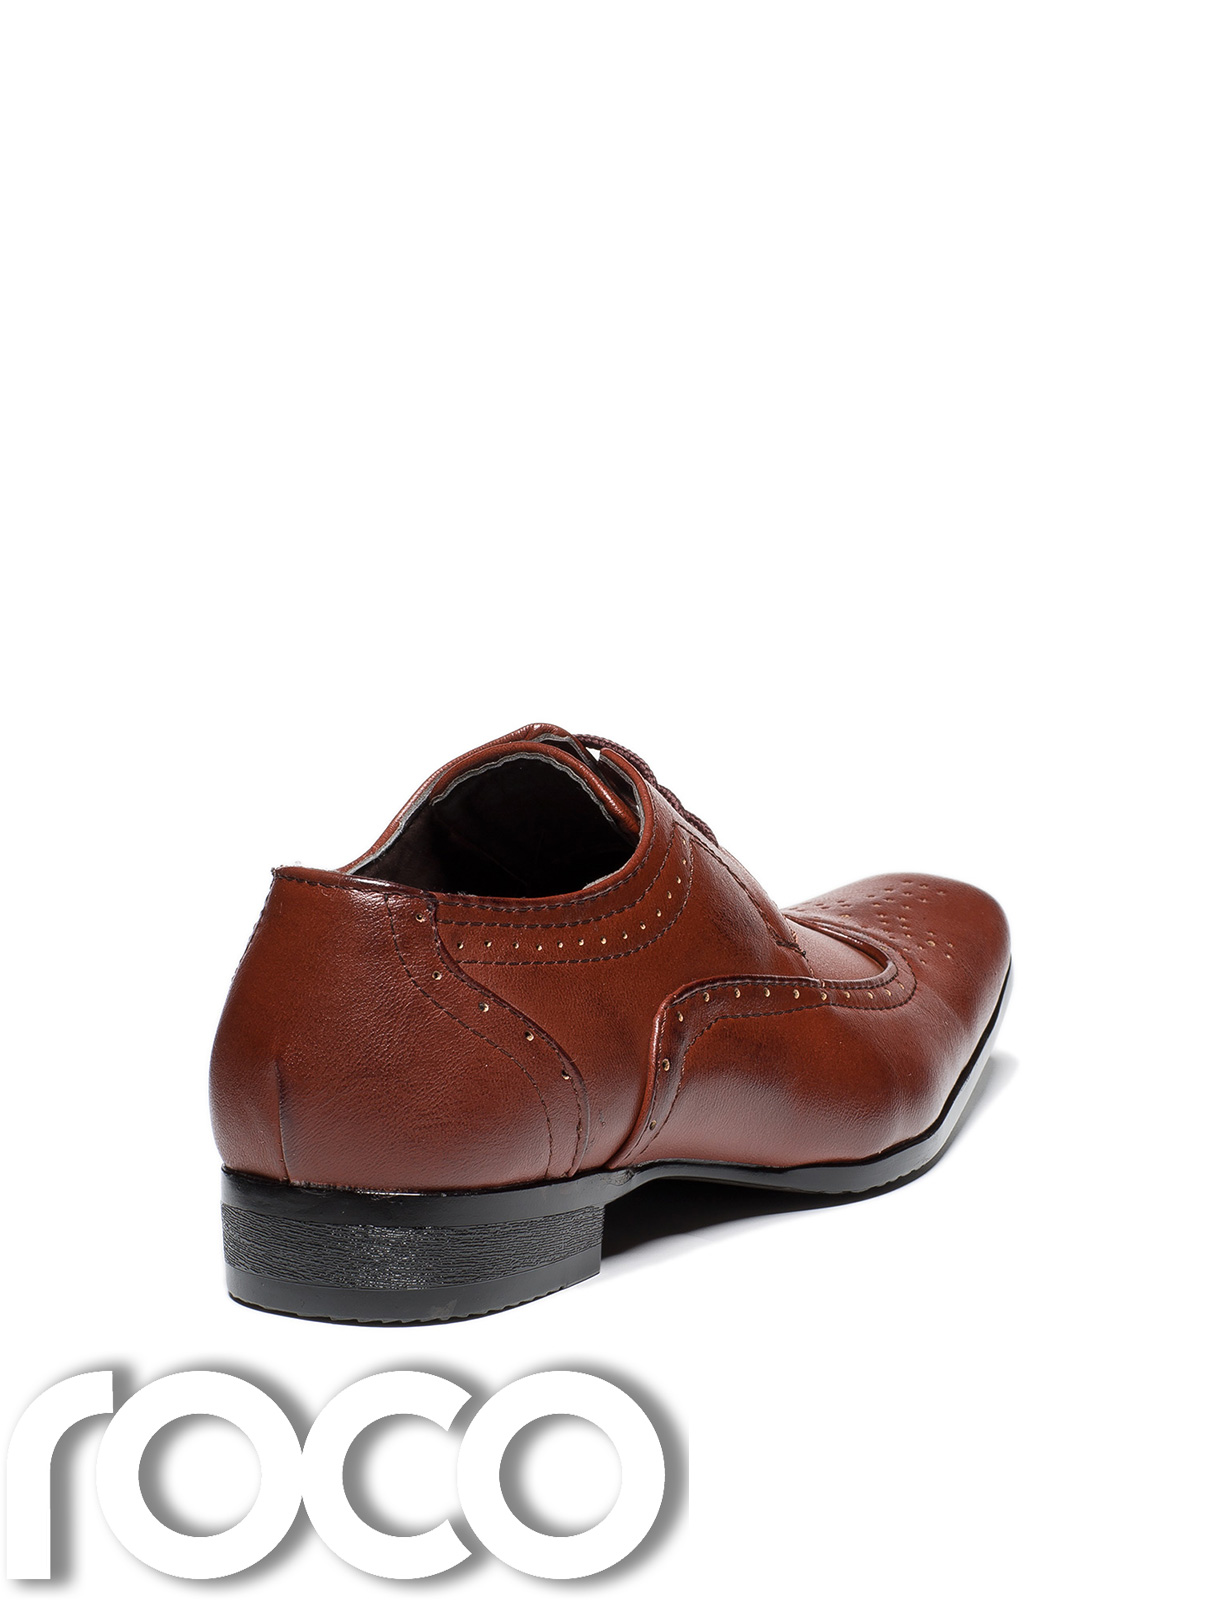 Dress Shoes for Boys. Every boy has a special occasion to dress up for from time to time. Make sure his outfit is complete with boys' dress shoes from mediacrucialxa.cf sizes for infants, toddlers, and older boys, you'll find the right pair of boys' shoes for kids of every age.. Boys' slip-ons are a reliable option with their easy-on/easy-off convenience and sharp looks, including a square.